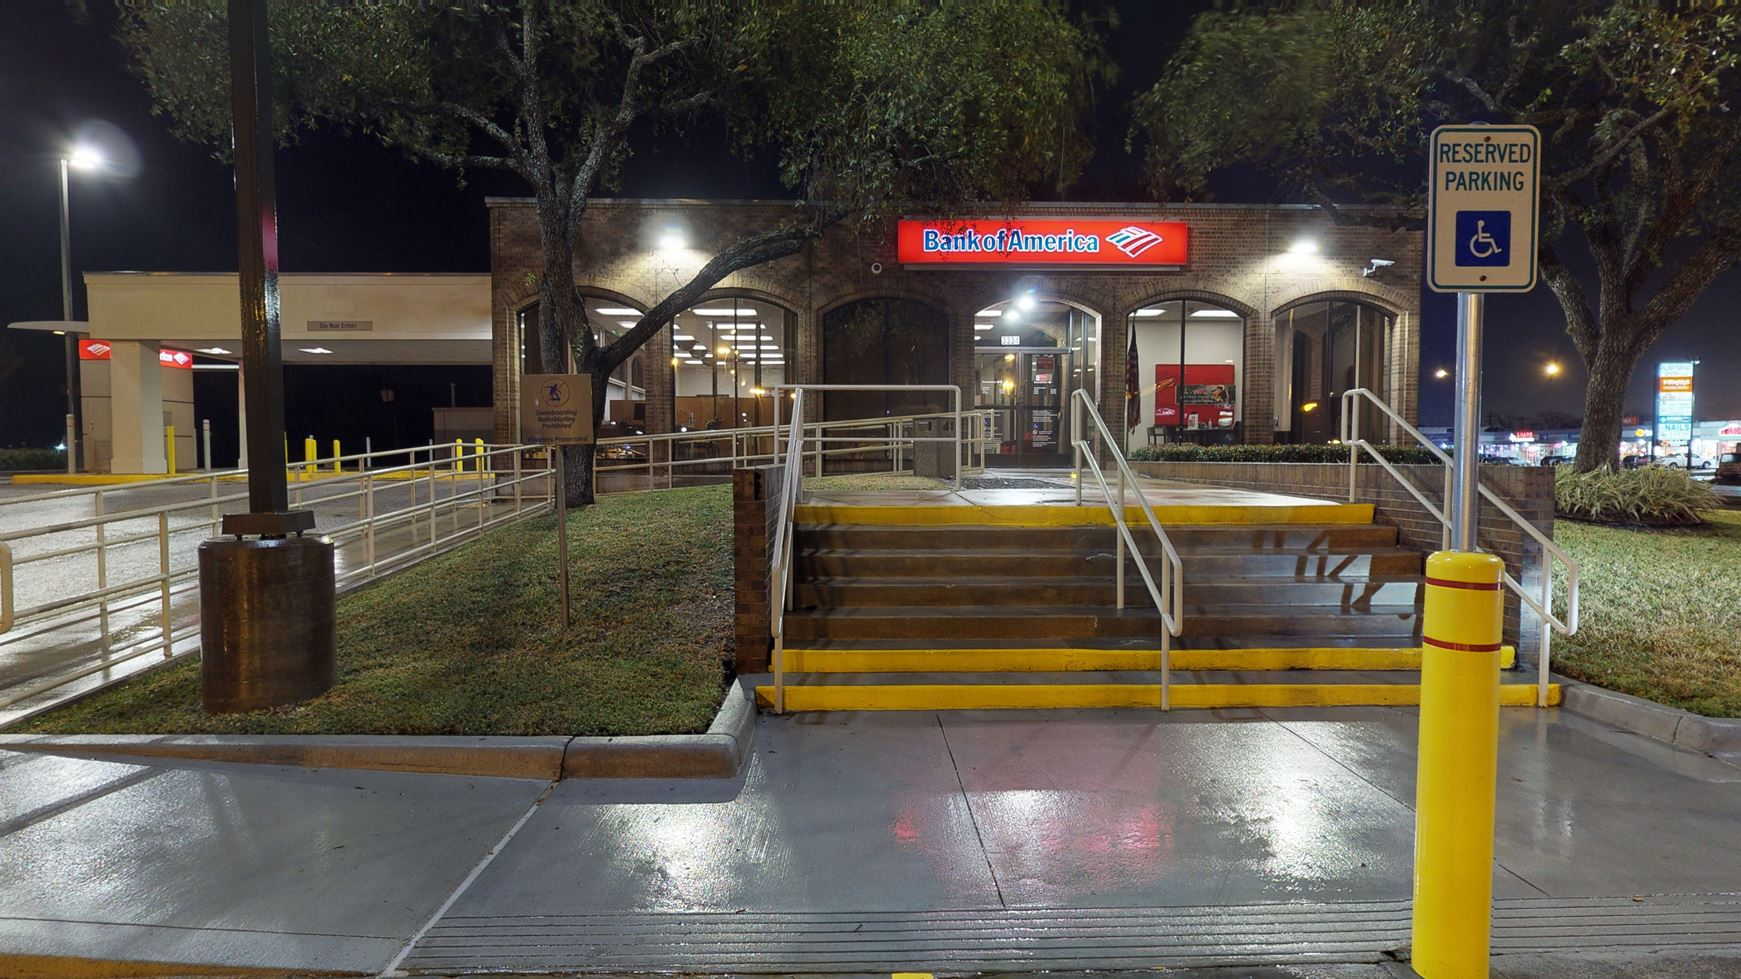 Bank of America financial center with drive-thru ATM   3334 Palmer Hwy, Texas City, TX 77590